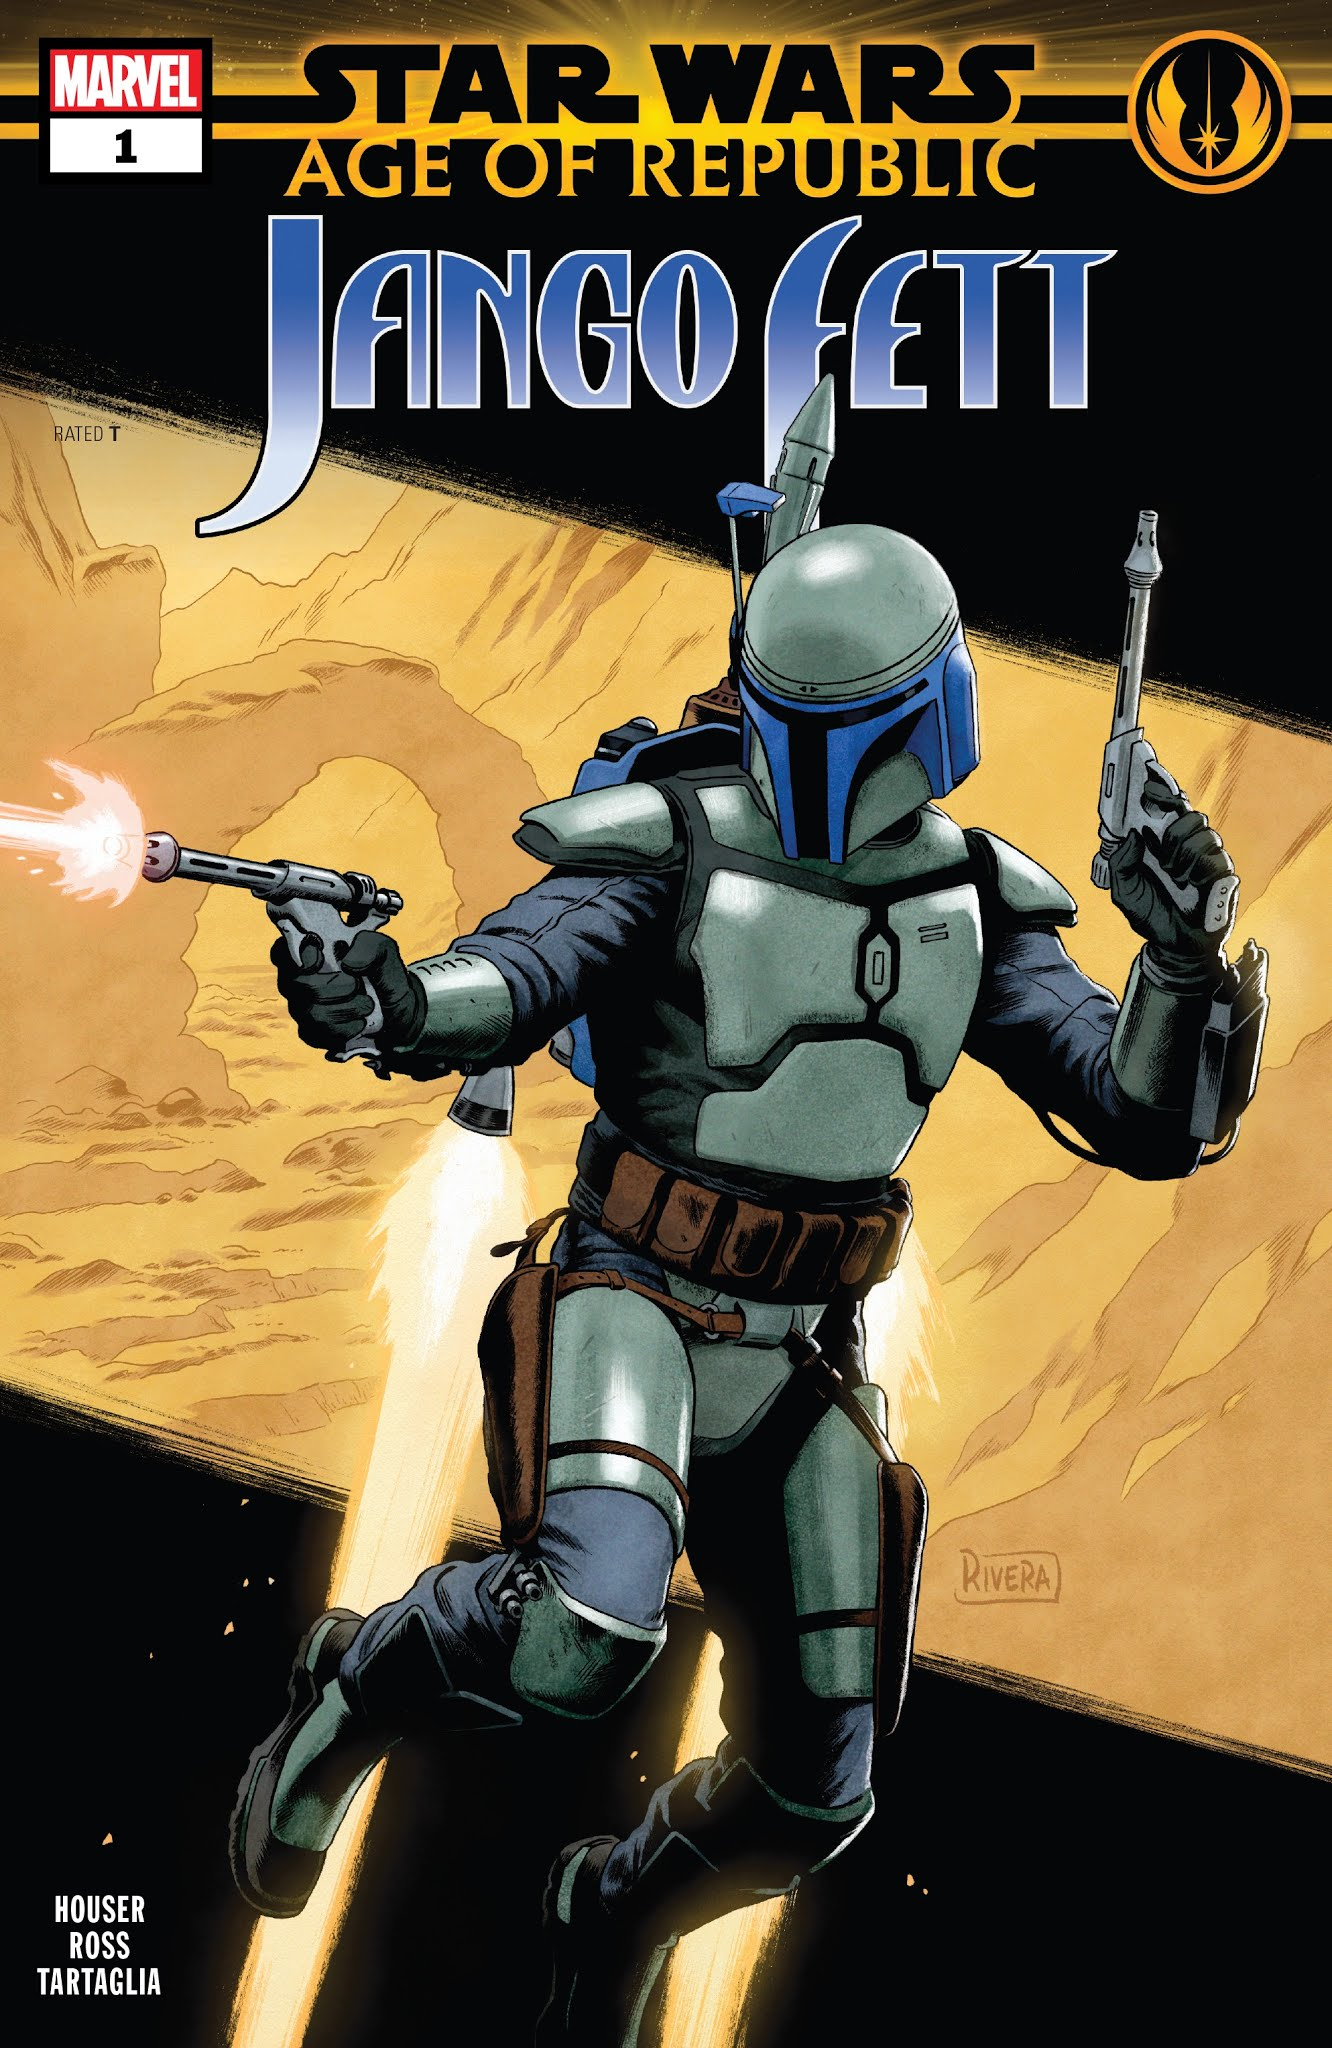 Star Wars: Age of Republic - Jango Fett Full Page 1